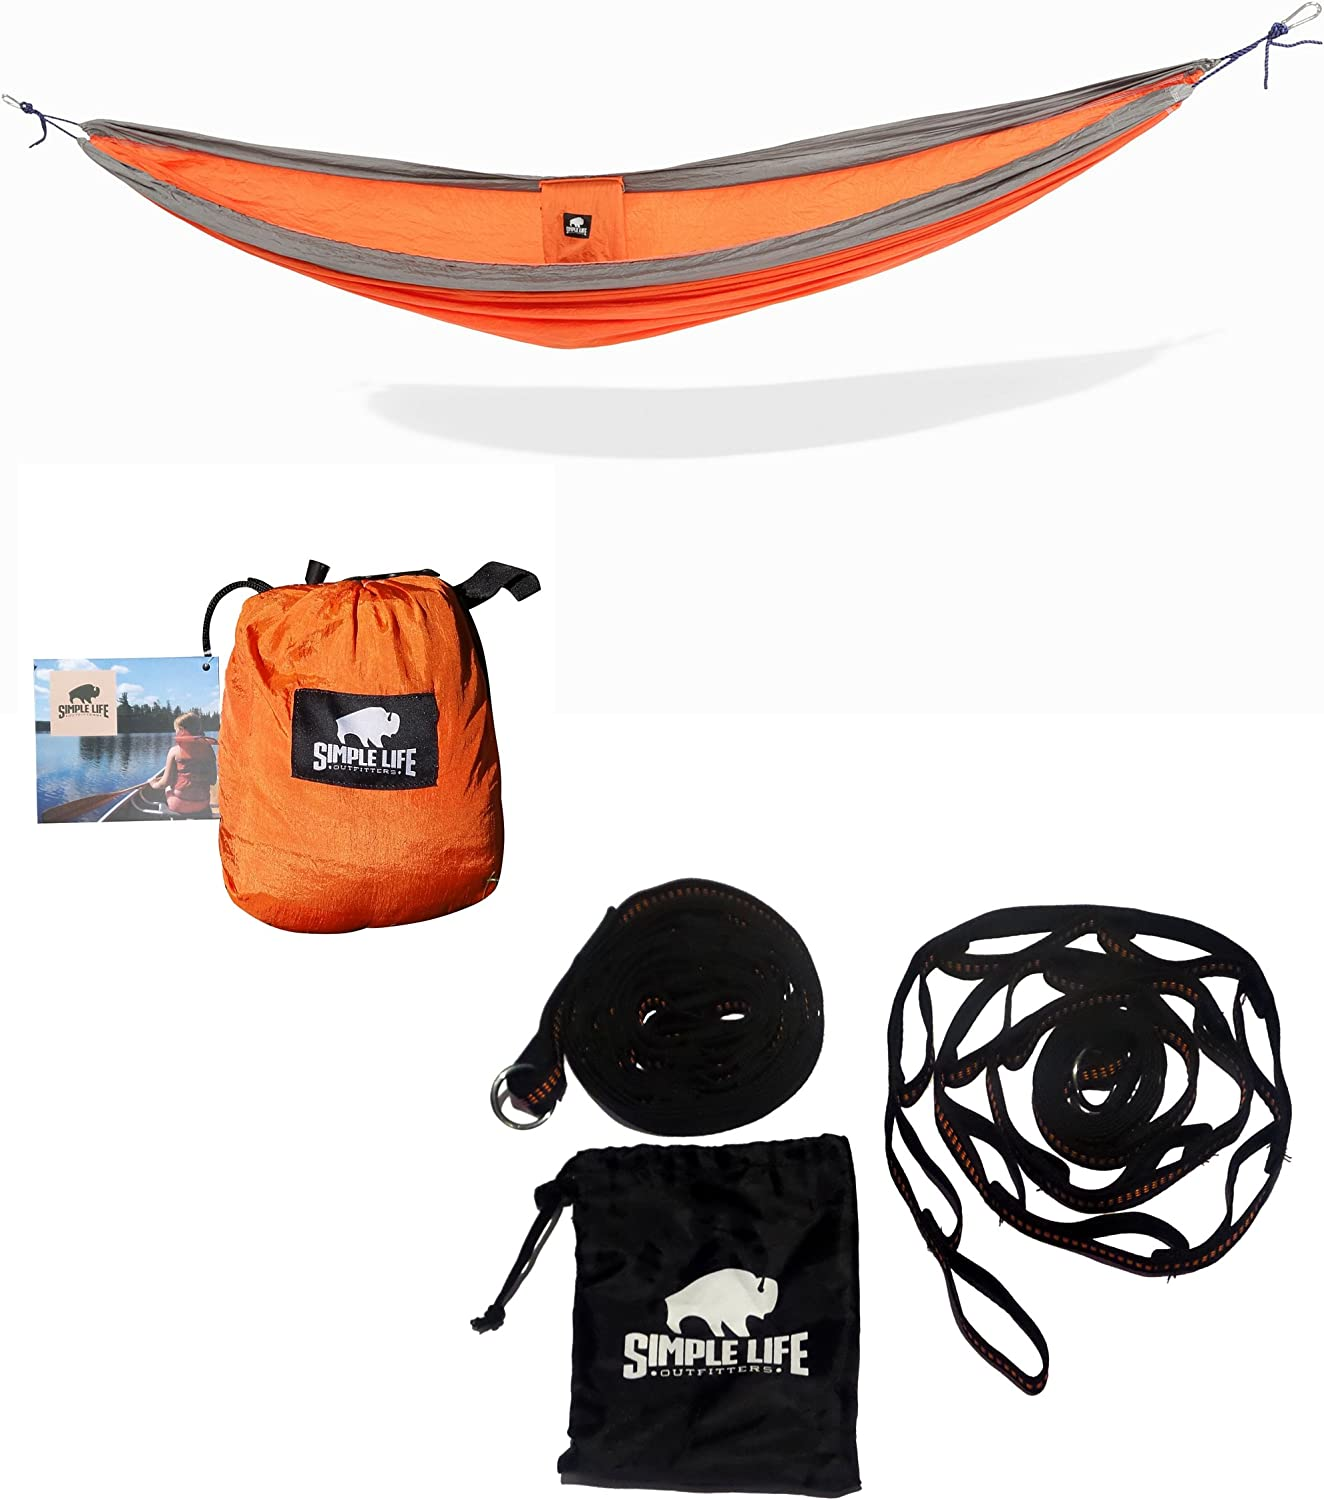 Premium Outdoor Nylon Camping Hammock, with Tree Straps Lightweight, Compact Portable for Camping, Hiking, Backyard Lounging More Made of Durable Parachute Nylon with Free 9ft Tree Straps